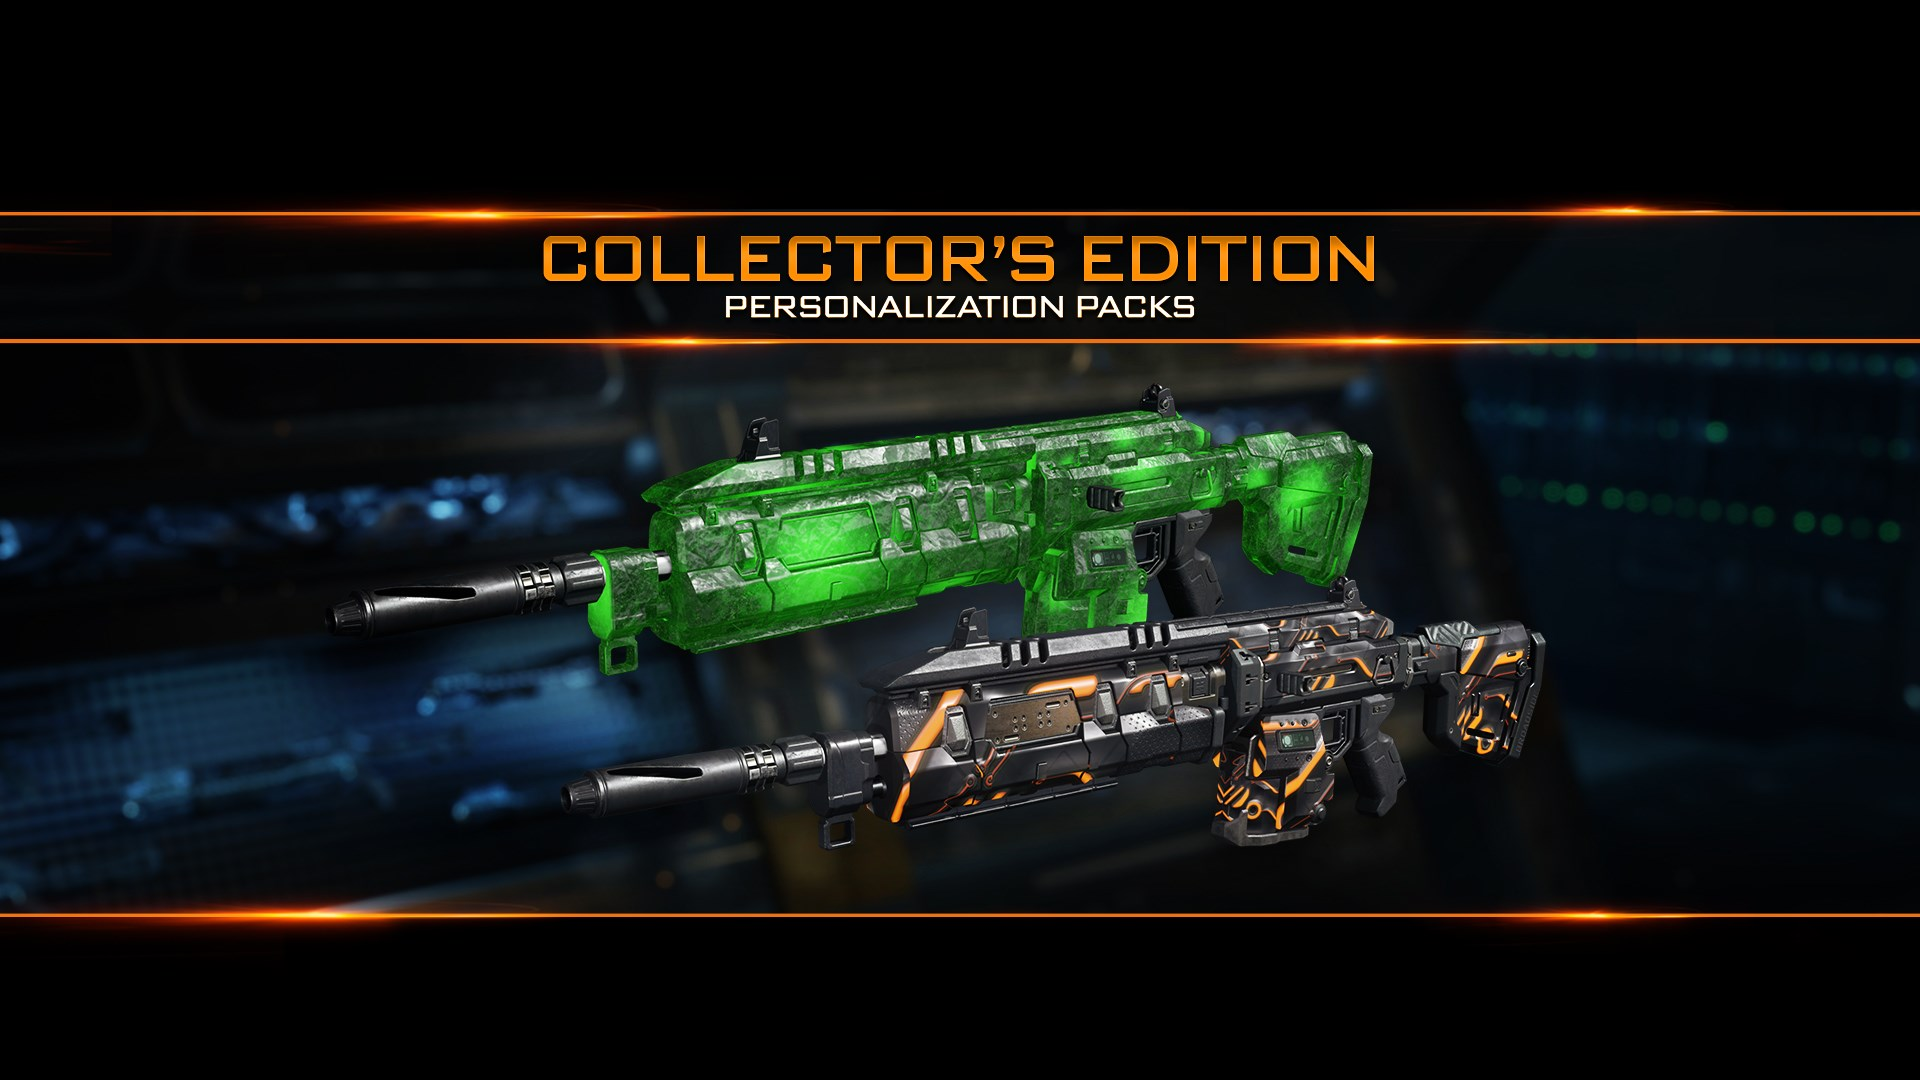 Buy Black Ops 3 Collector S Edition Personalization Packs